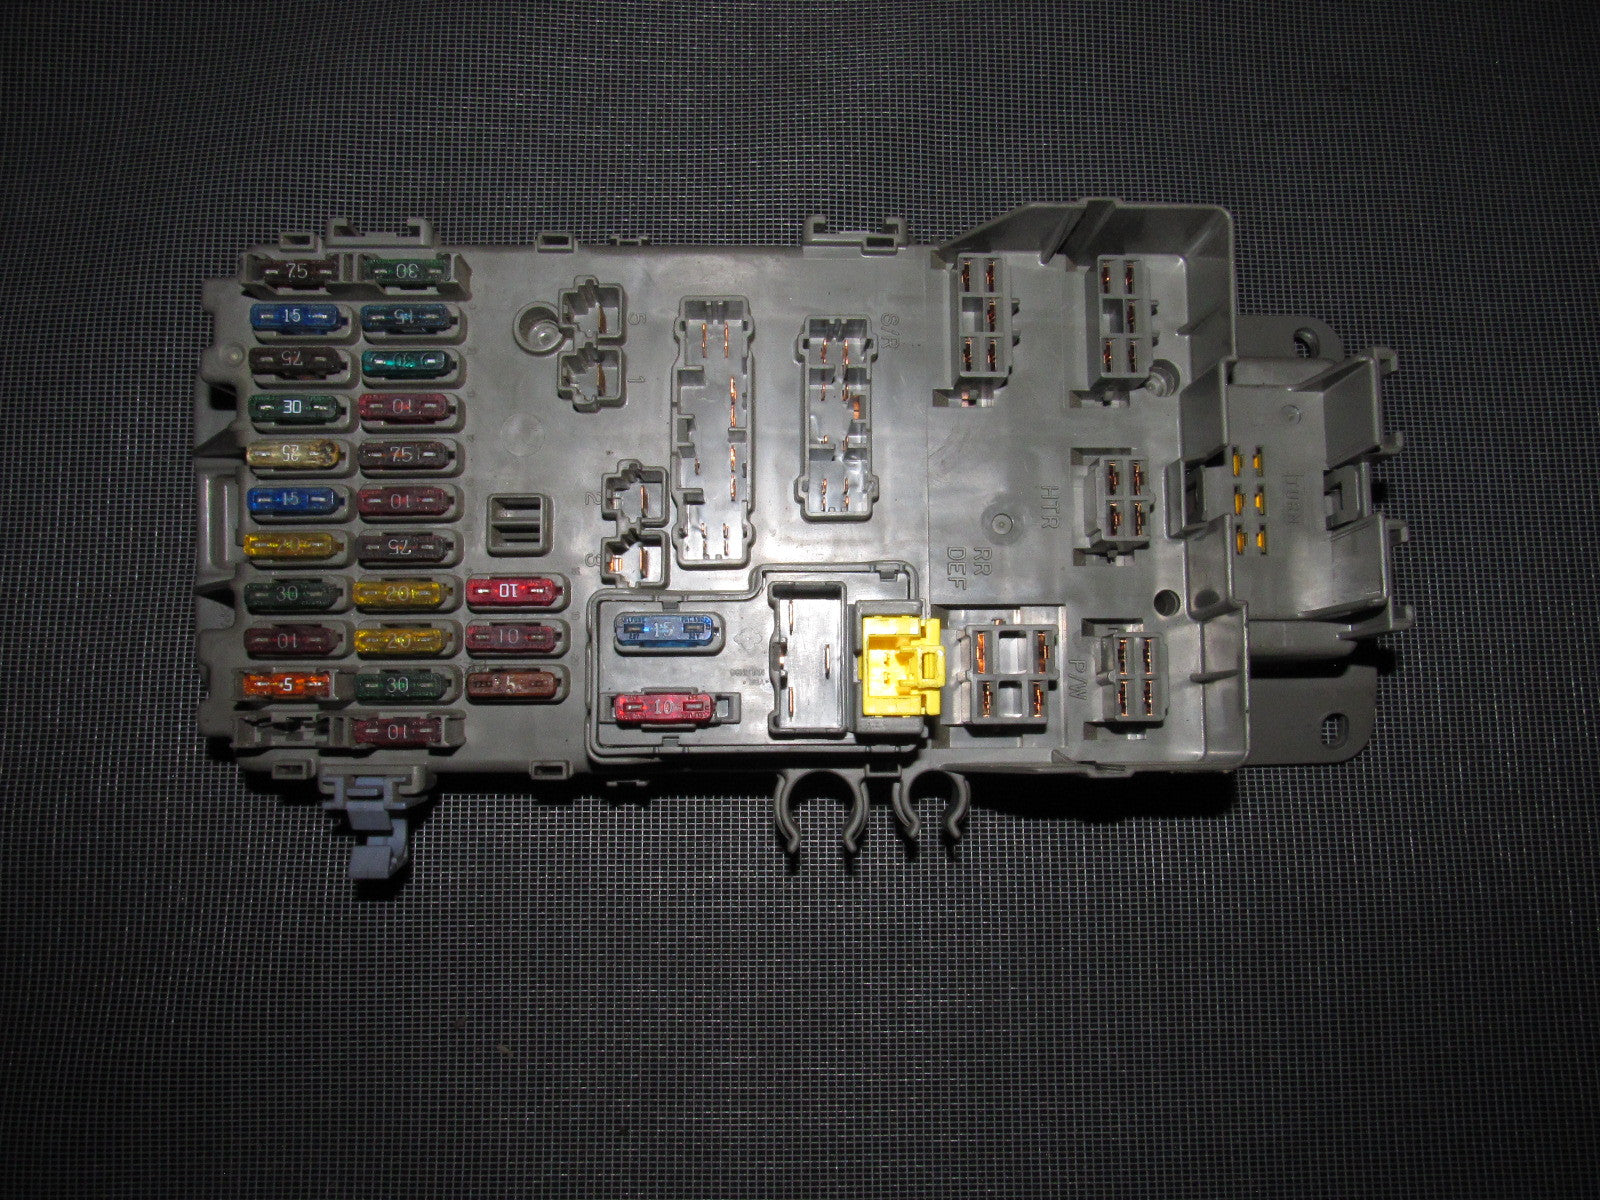 1993 Honda Prelude Fuse Panel Diagram Schematics 94 Civic Box 92 93 95 96 Si H23 Oem Interior